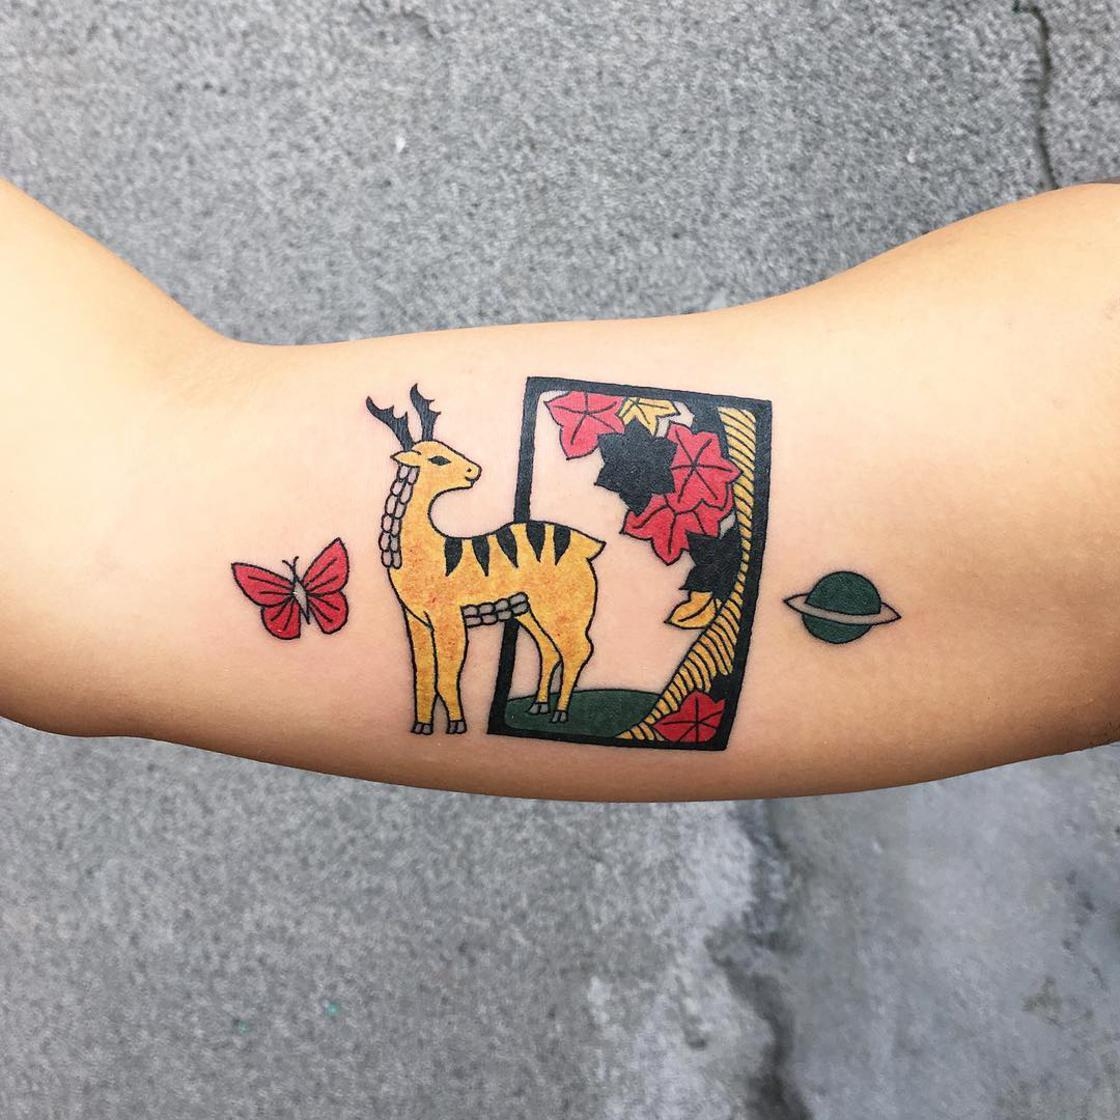 Hybrid Ink - The adorable and colorful tattoos of Kimsany